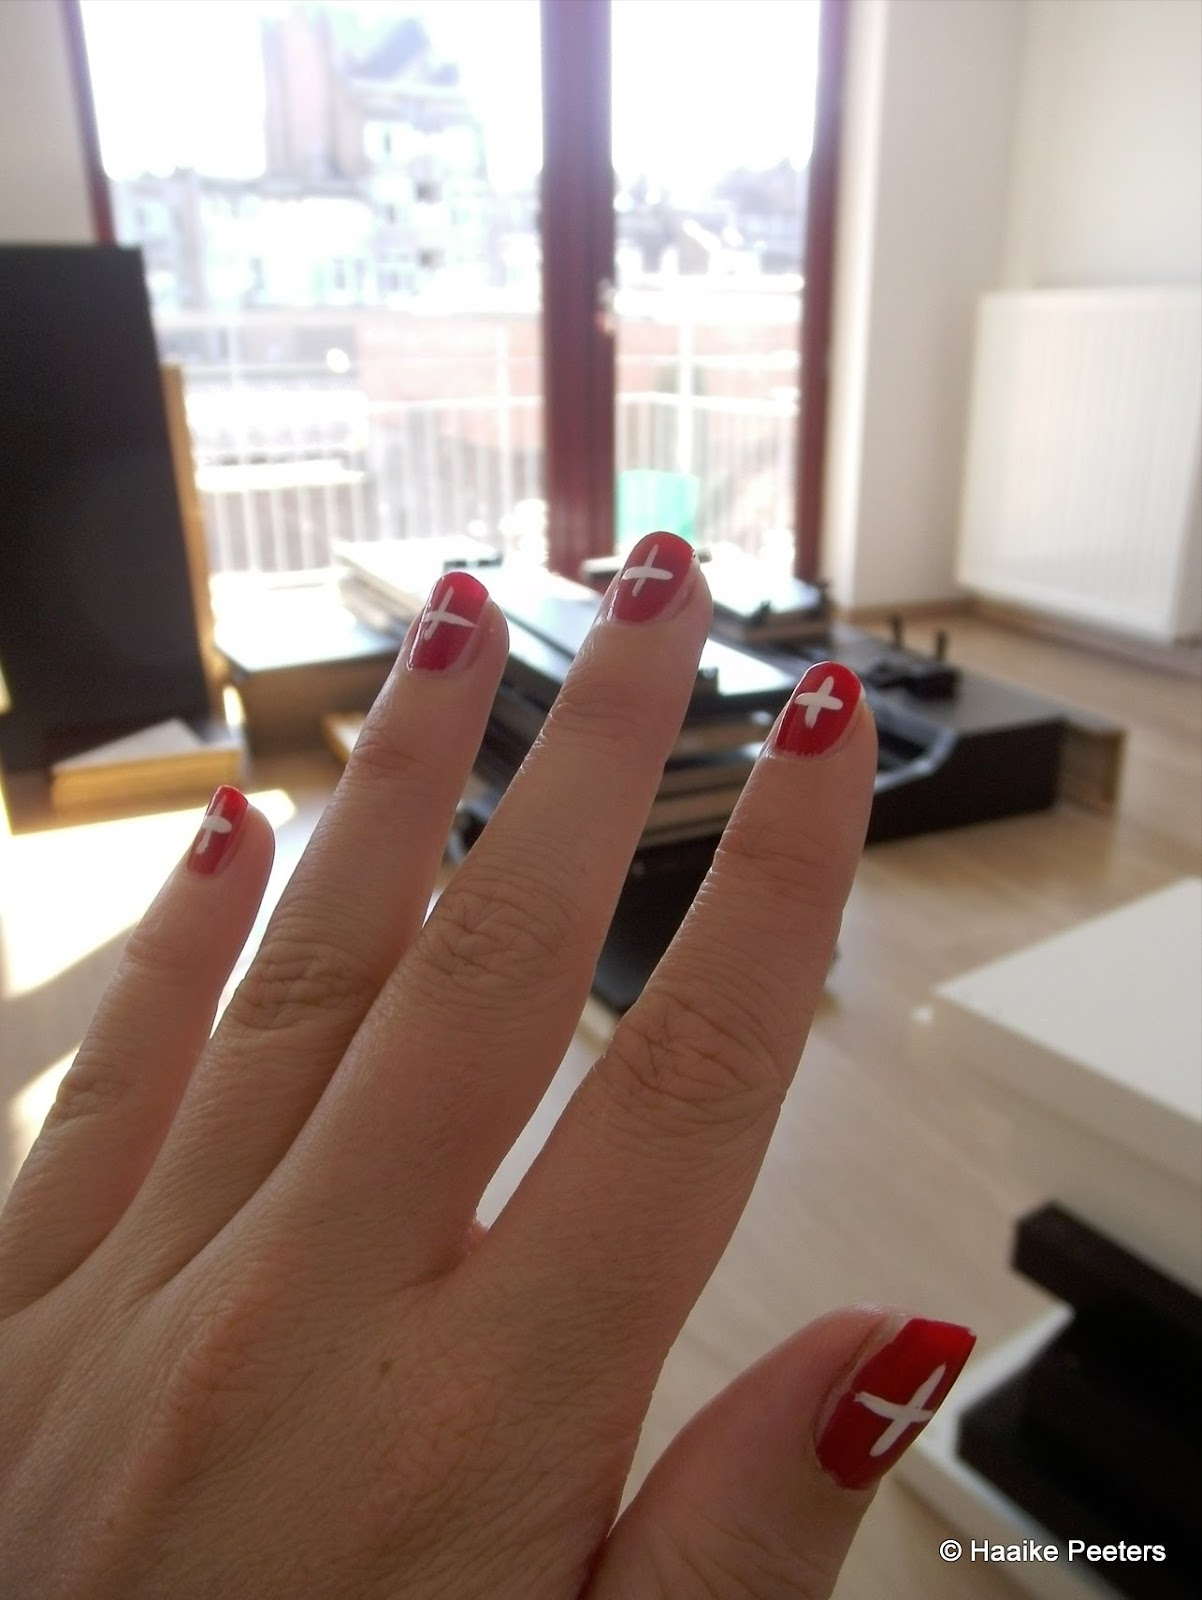 Swiss nails (Le petit requin)